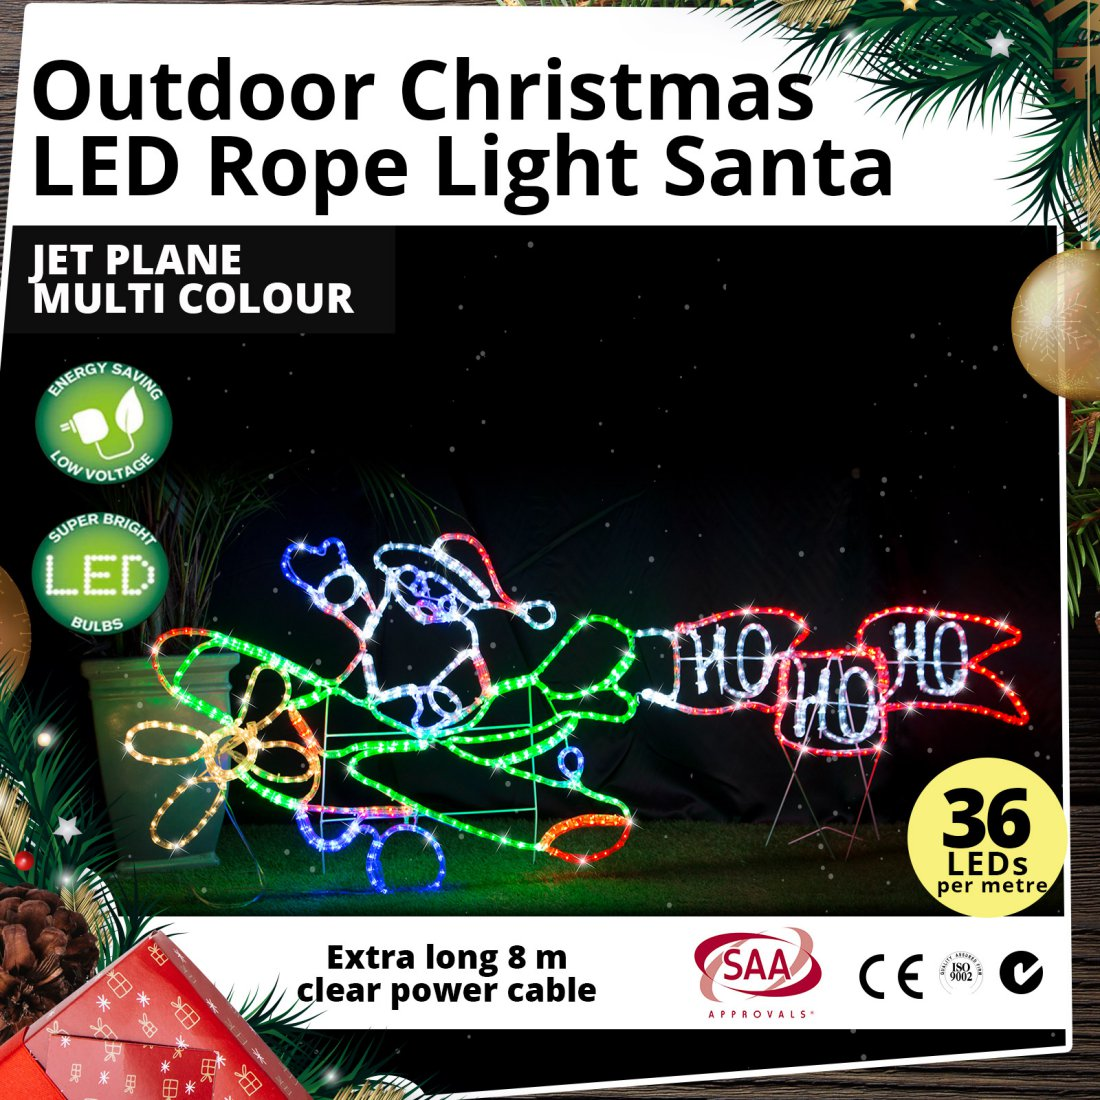 LED Rope Light Santa Jet Plane Multi Colour Outdoor Christmas Light Motif 190cm